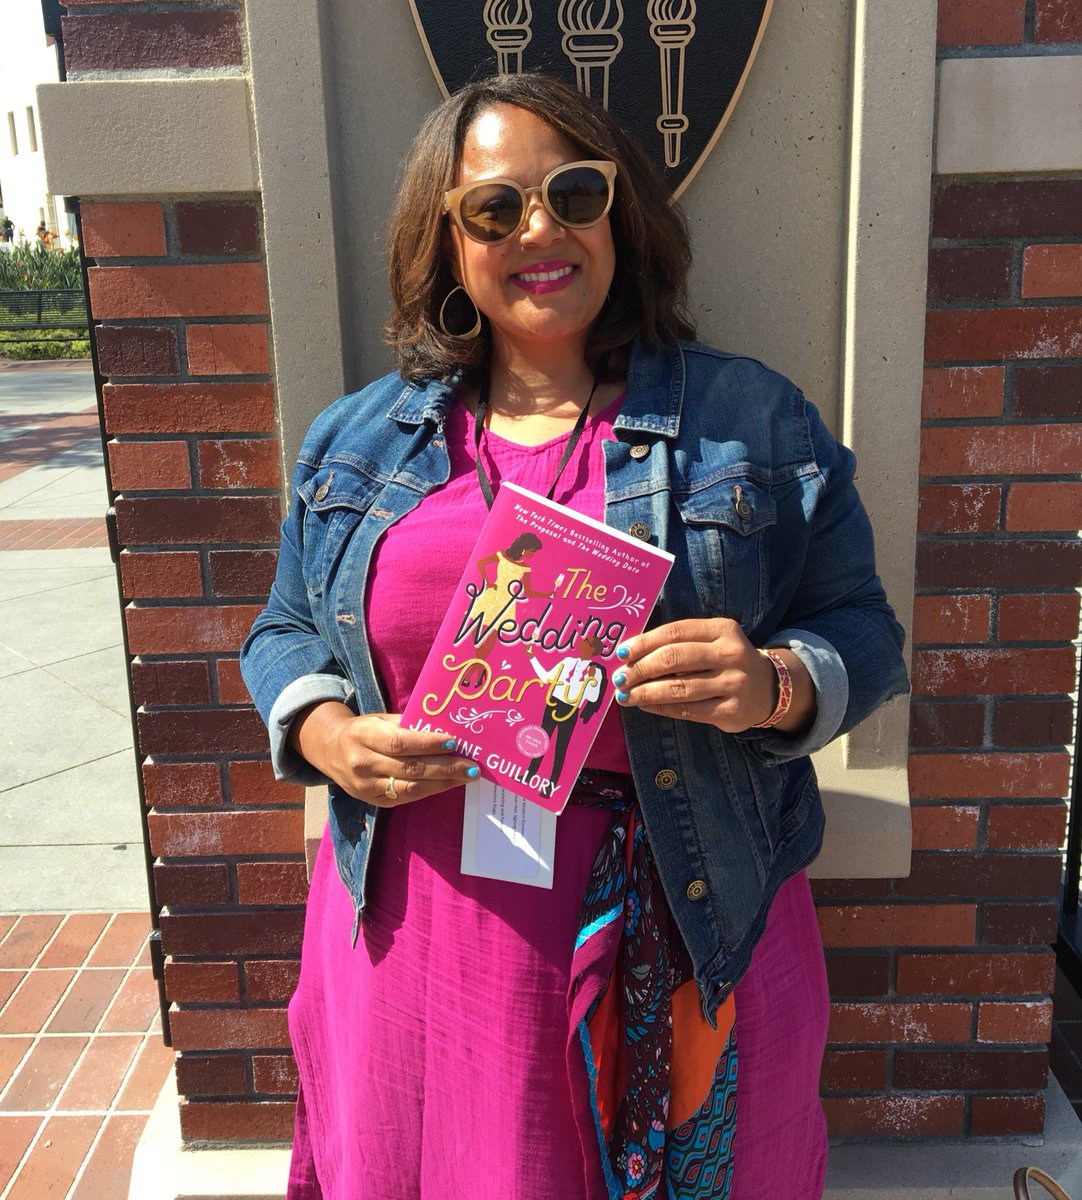 The Wedding Date Cast.Jasmine Guillory On Twitter Here S Me And My Books Buy The